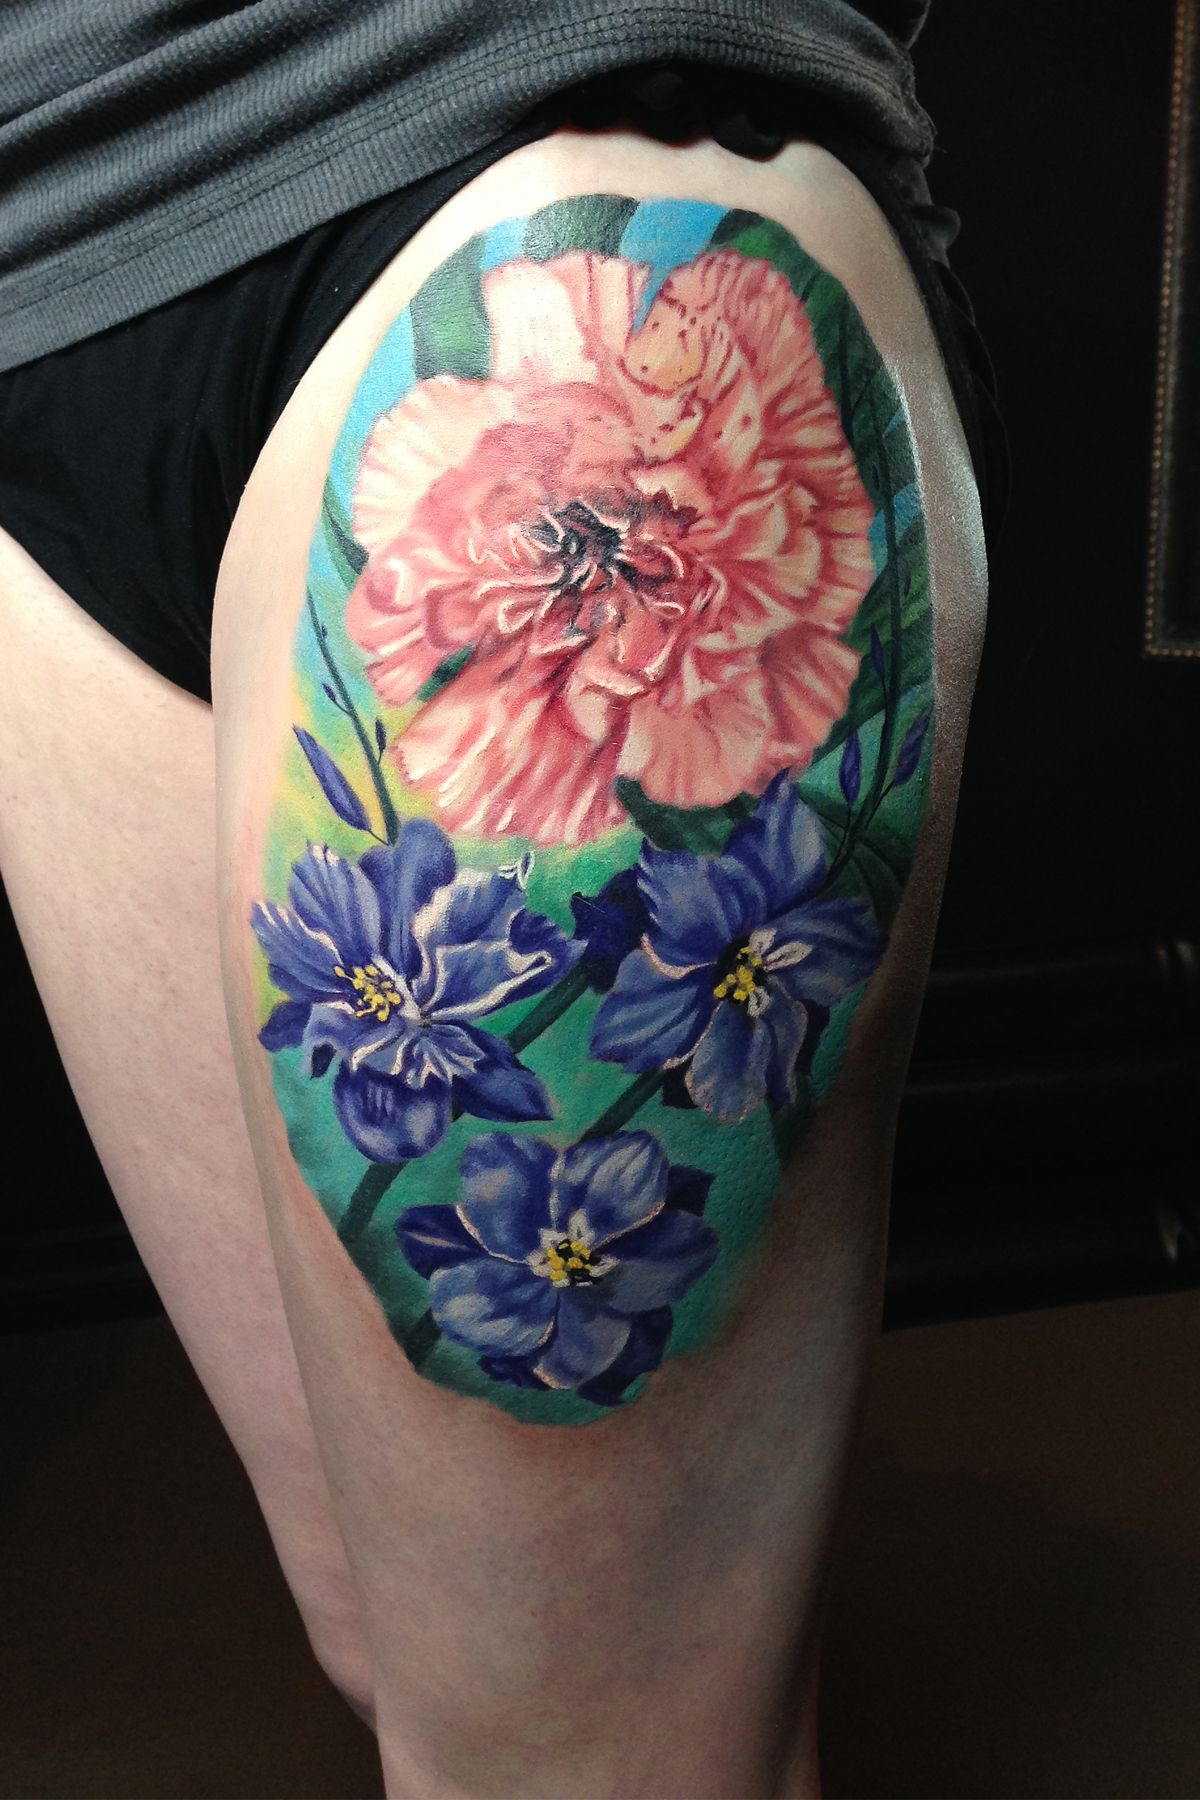 Carnation and larkspur flower color thigh tattoo by Monte Livingston at Livin